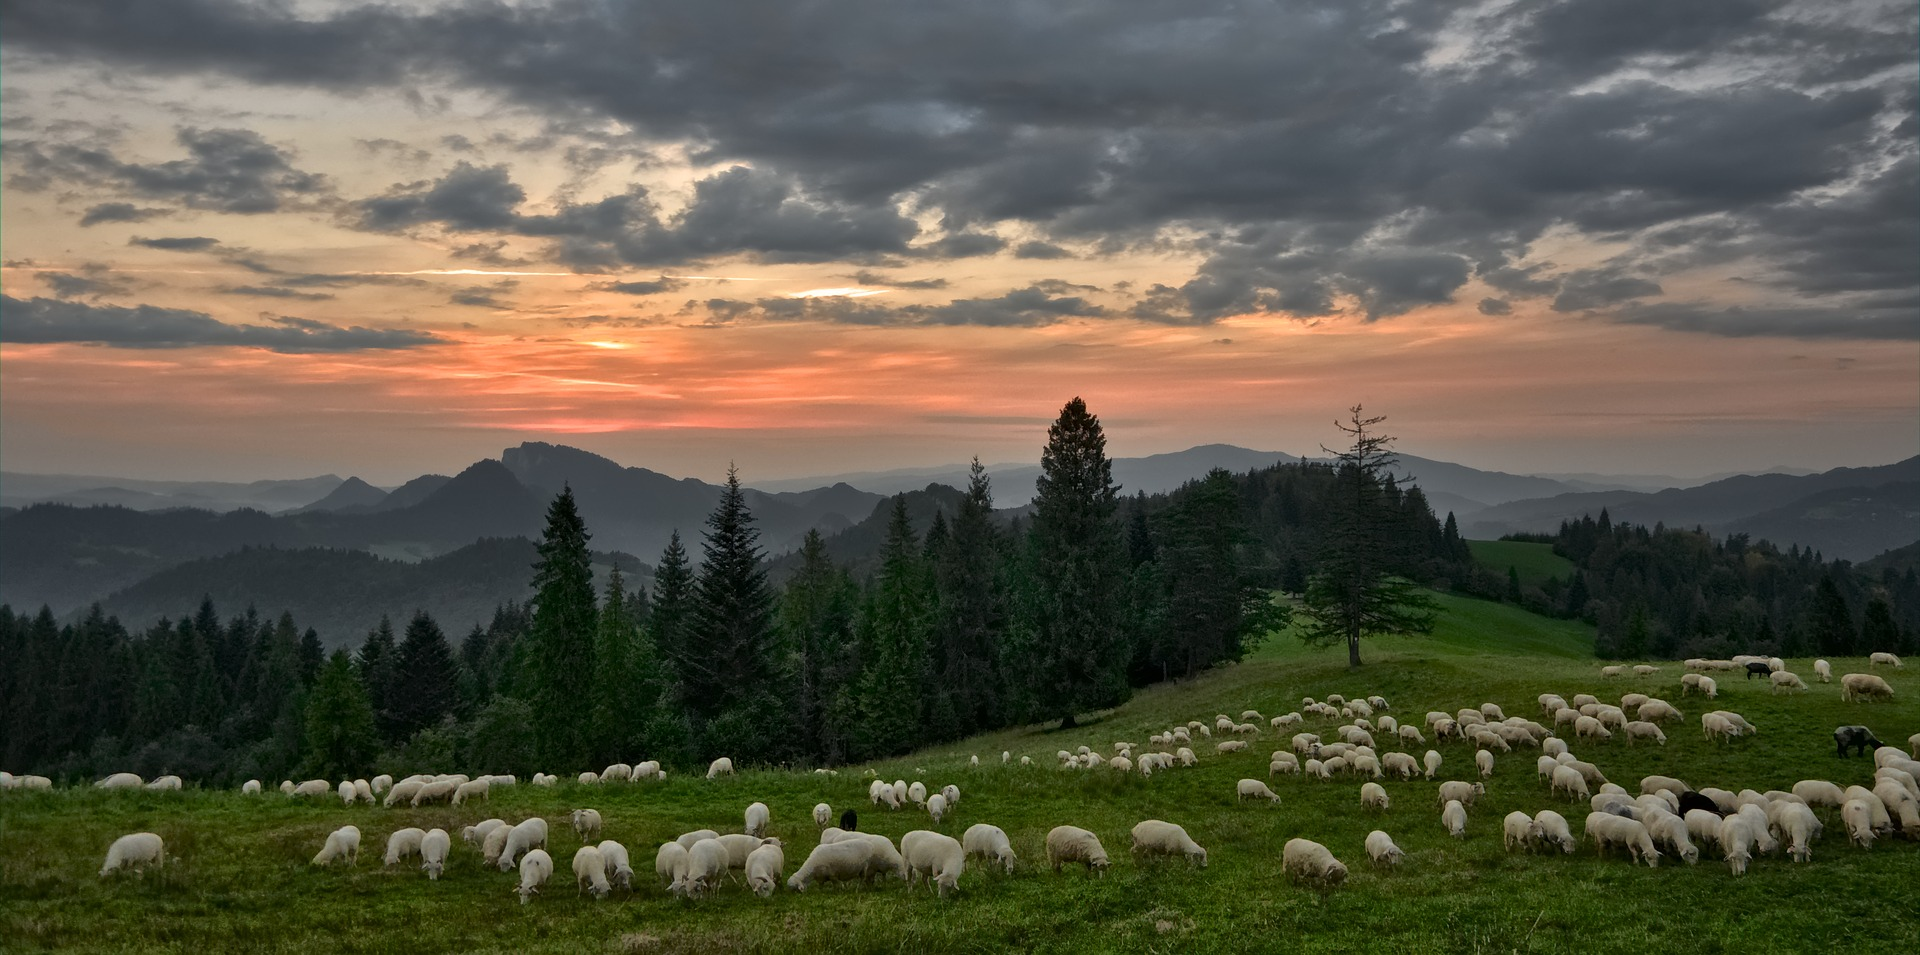 Sheep Grazing in the Mountains at Sunset